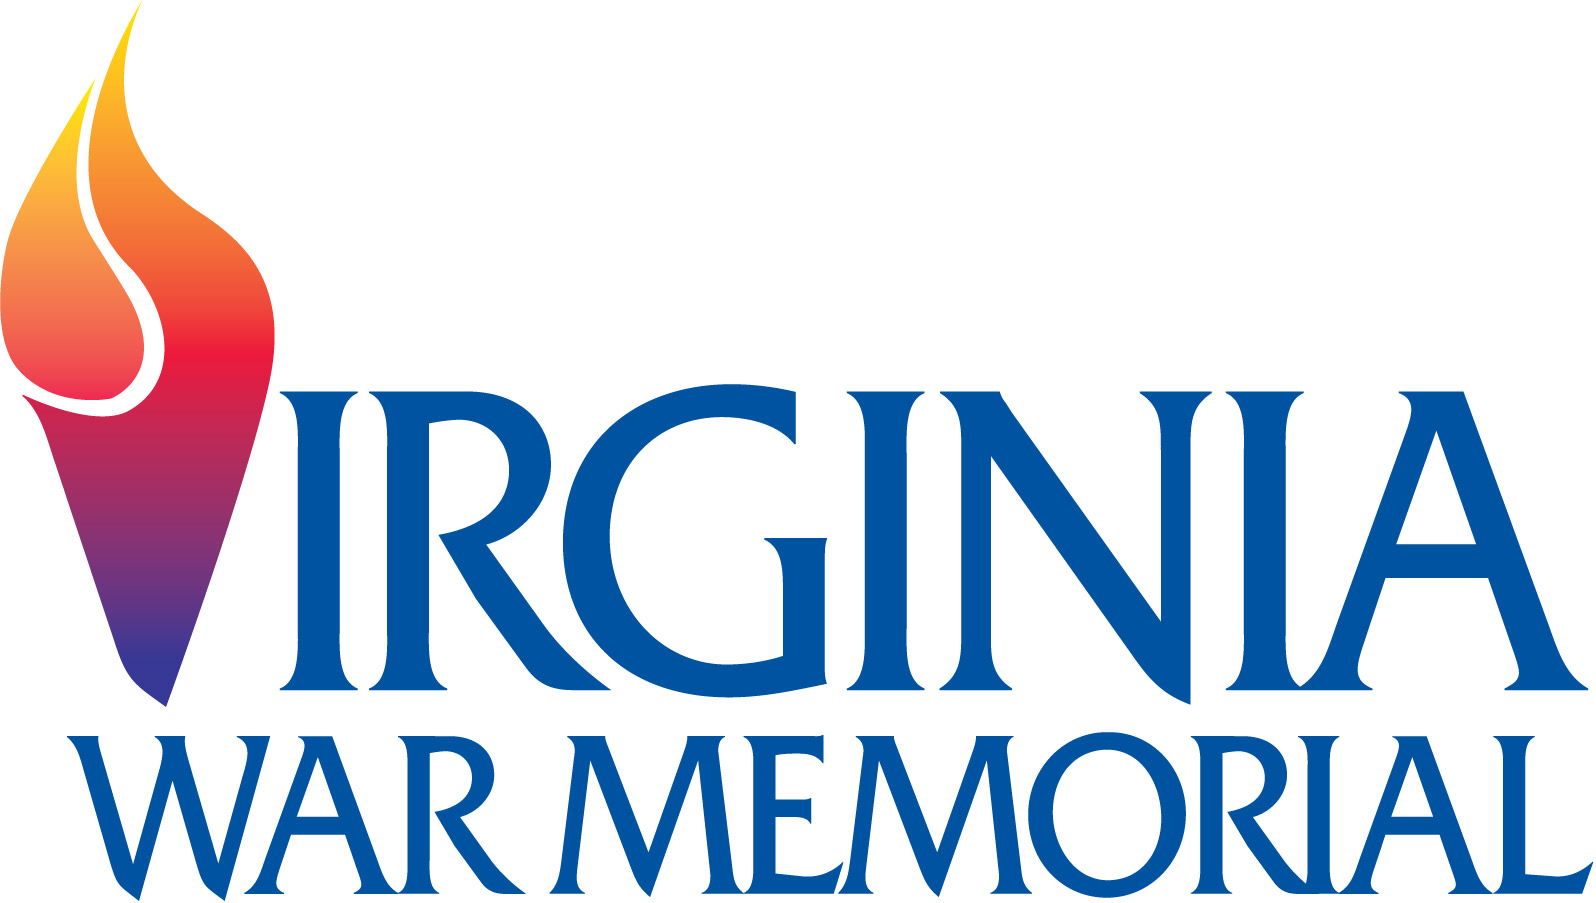 Organization logo of Virginia War Memorial Foundation